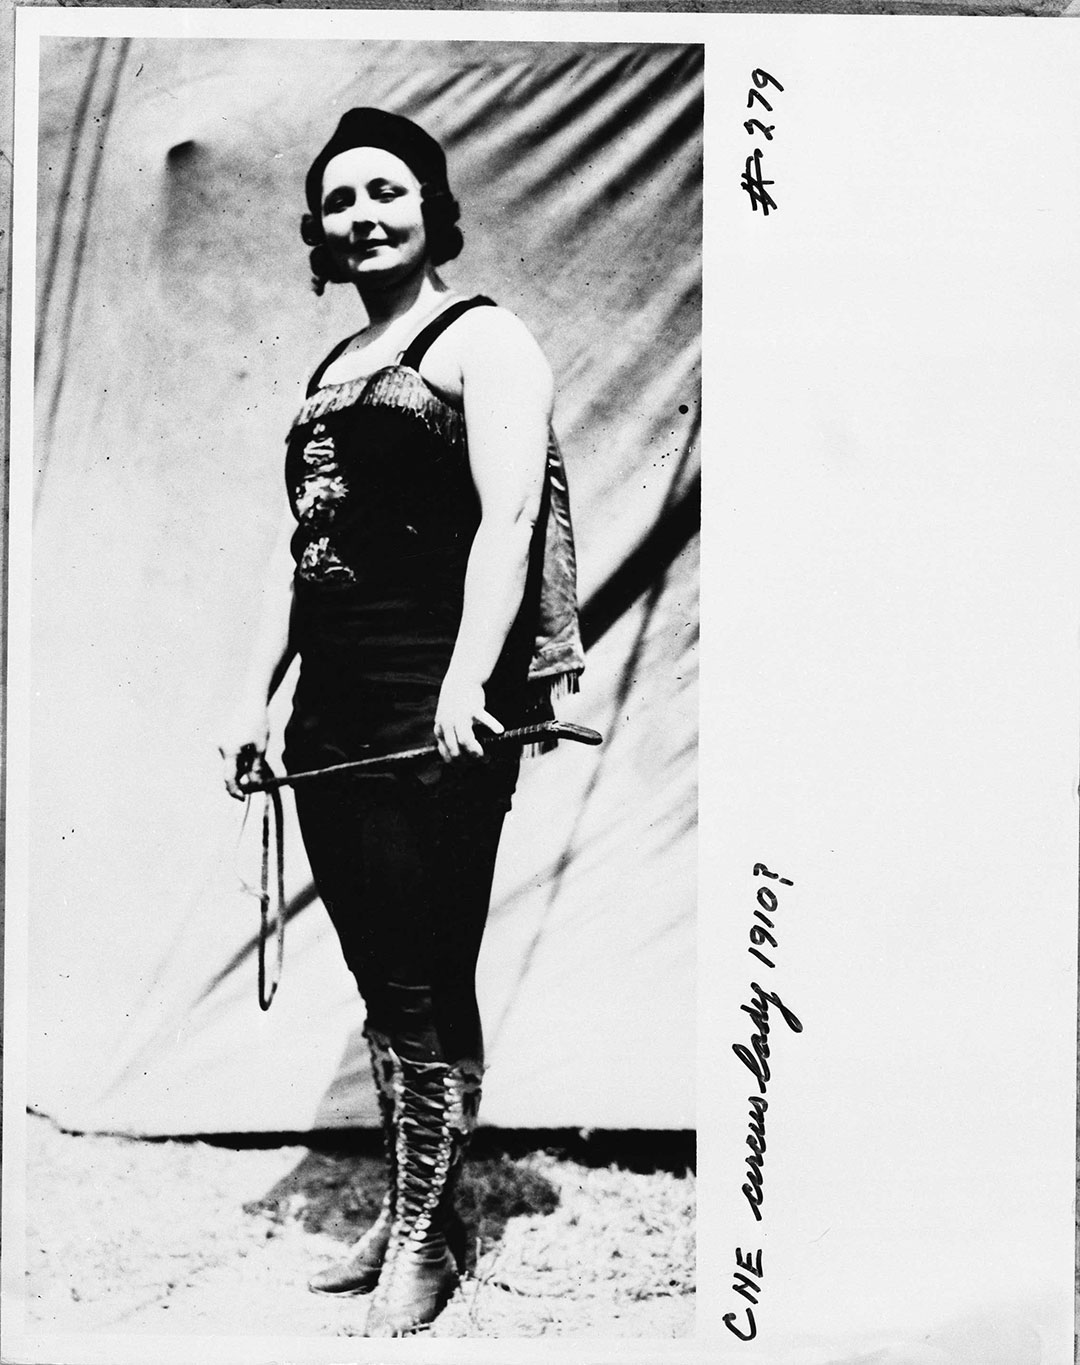 Midway Circus Performer, 1910